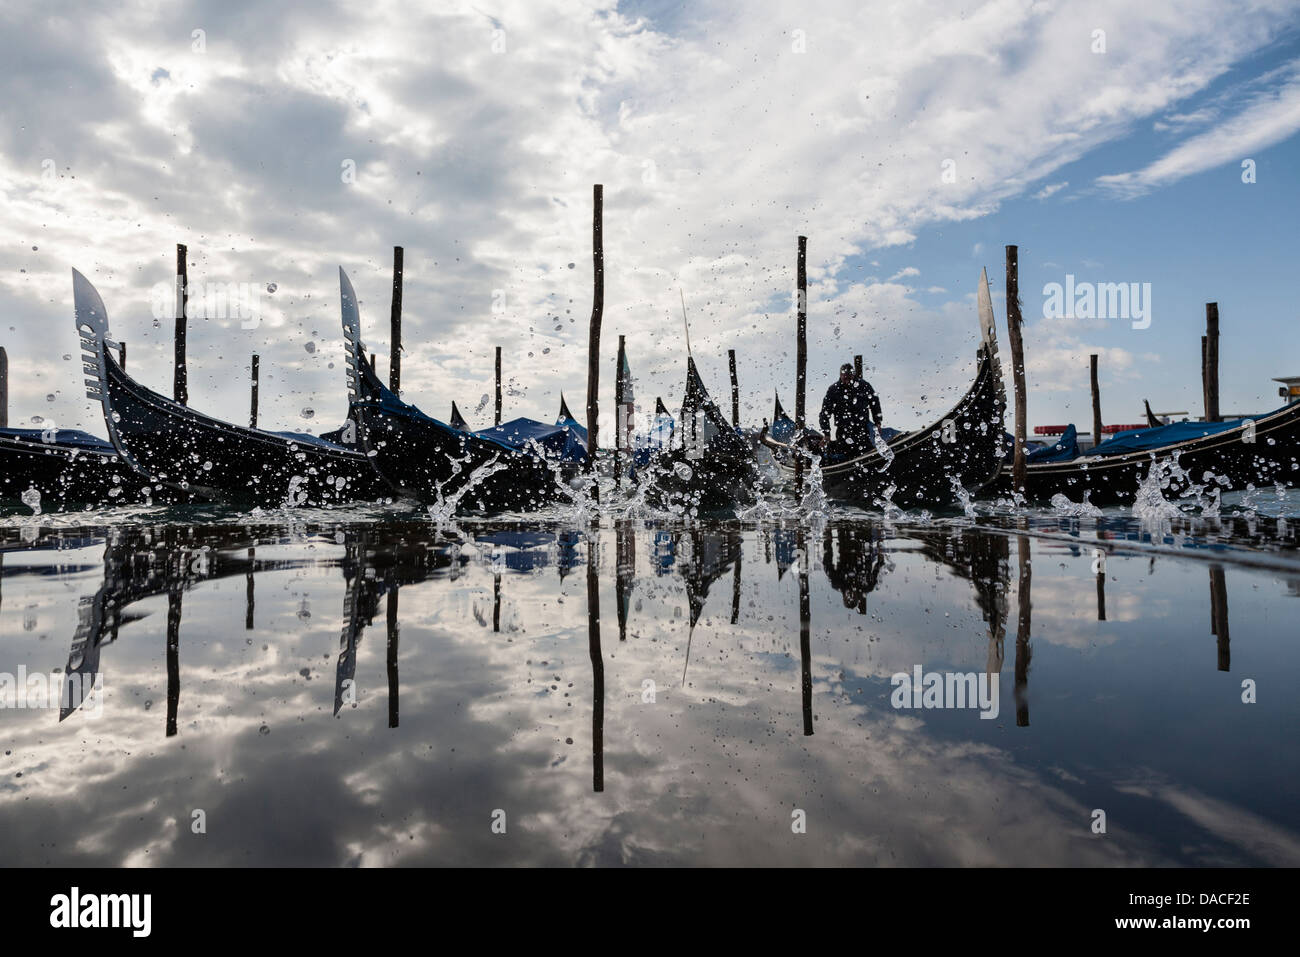 Gondolas with reflection and water splash, Venice, Italy Stock Photo